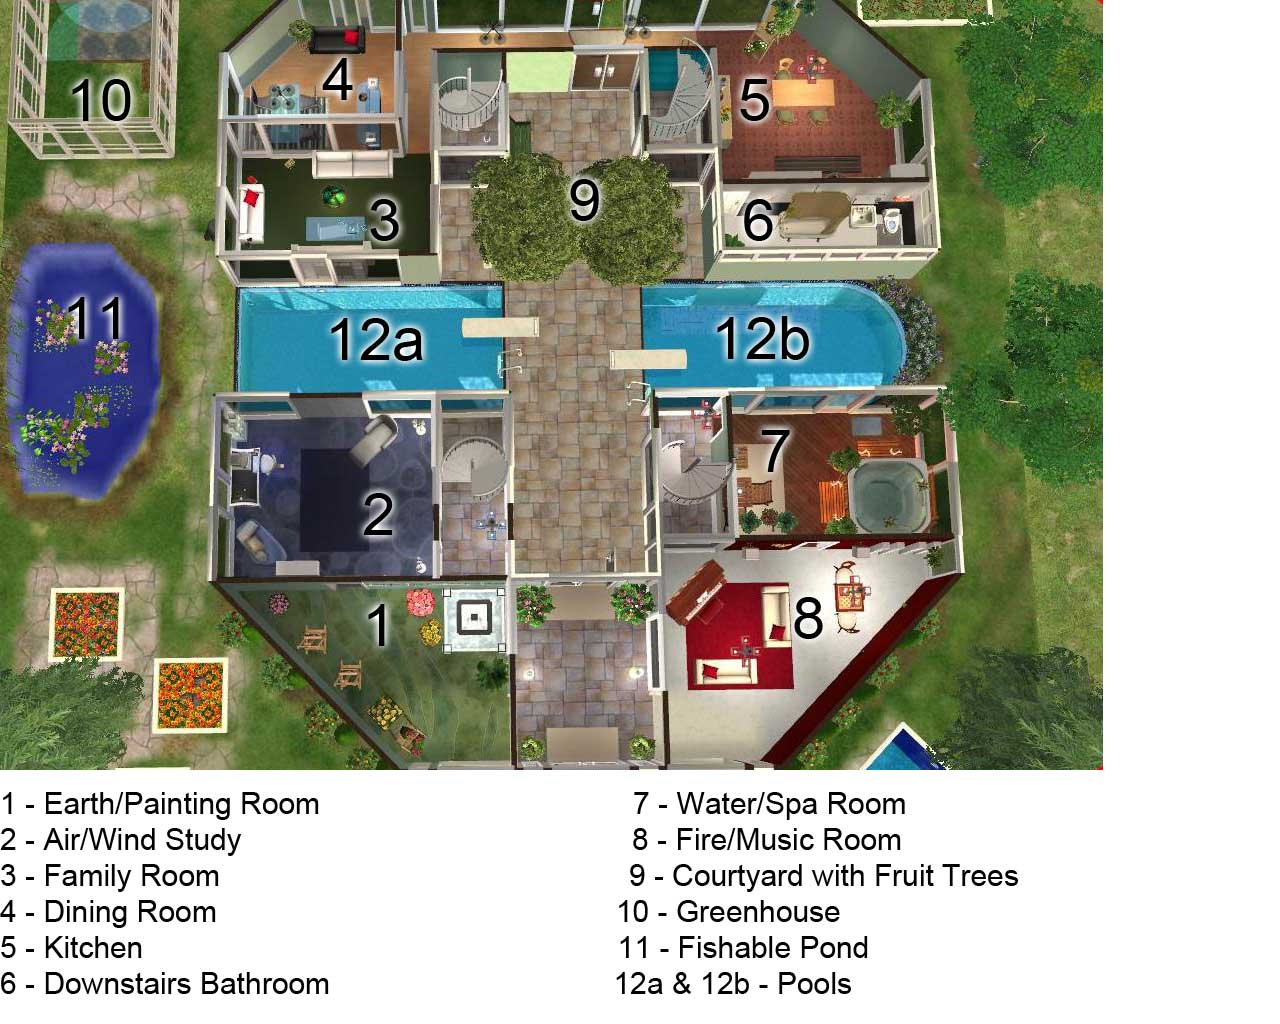 Sims mansion blueprints joy studio design gallery best for Mansion floor plans sims 4